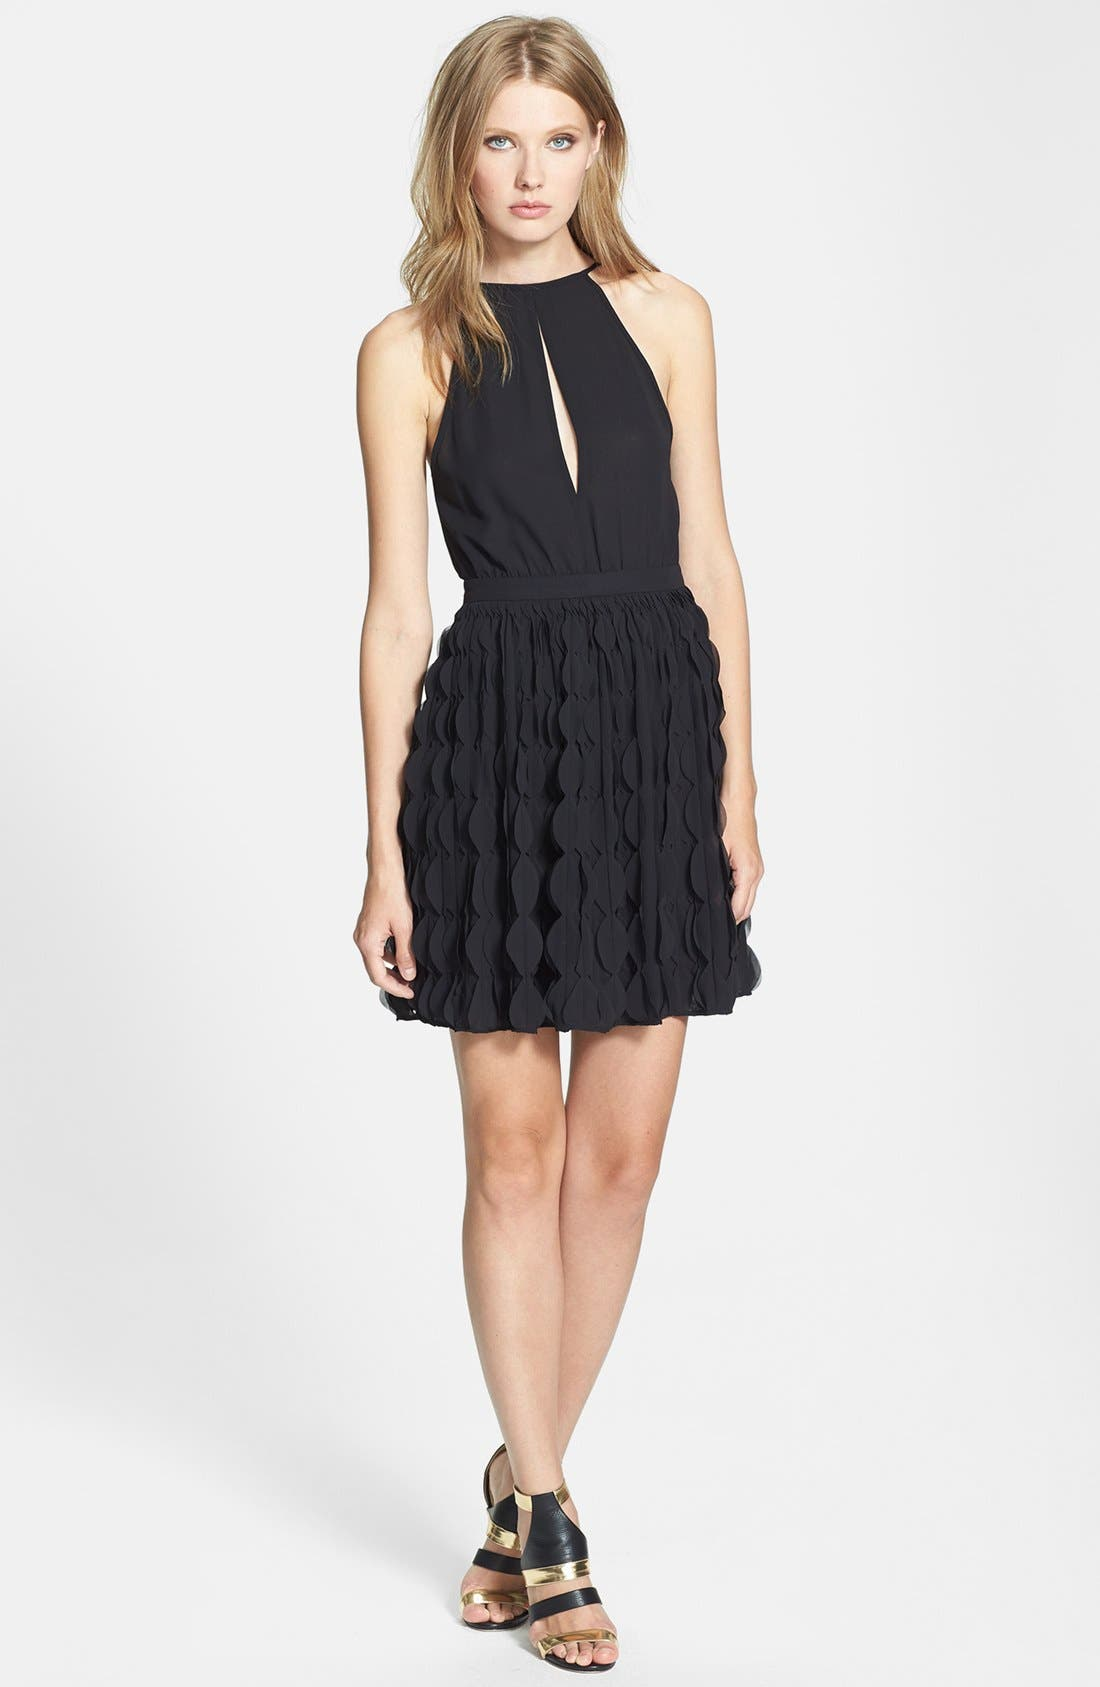 Main Image - Diane von Furstenberg 'Gia' Ruffle Skirt Fit & Flare Dress